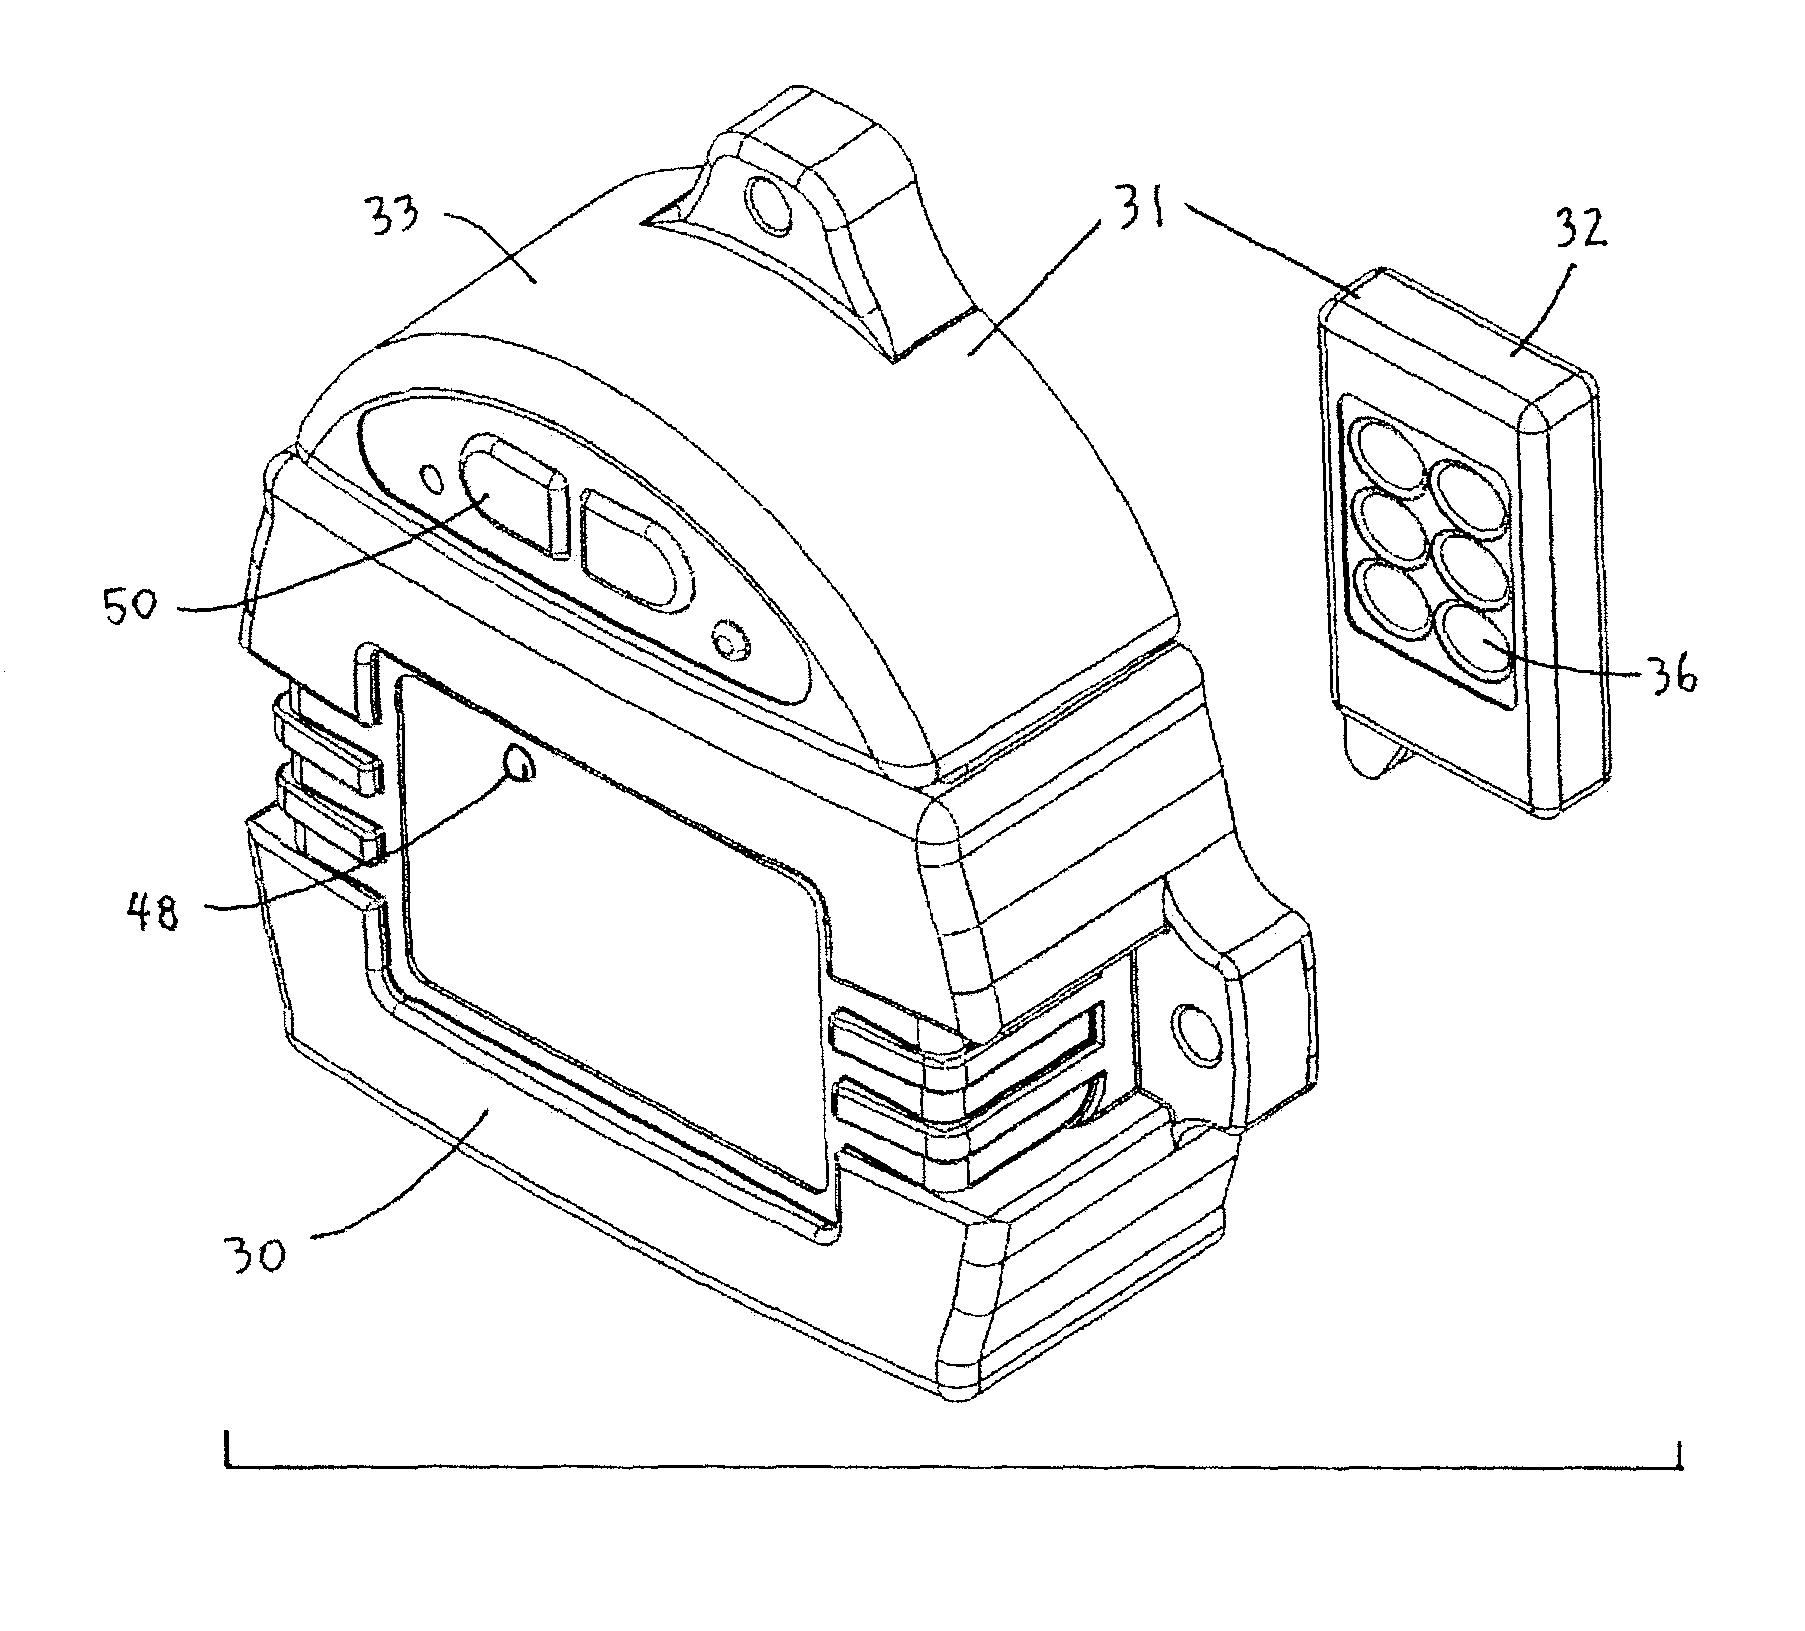 patent us8666595 one touch controller for tarp systems google patent drawing